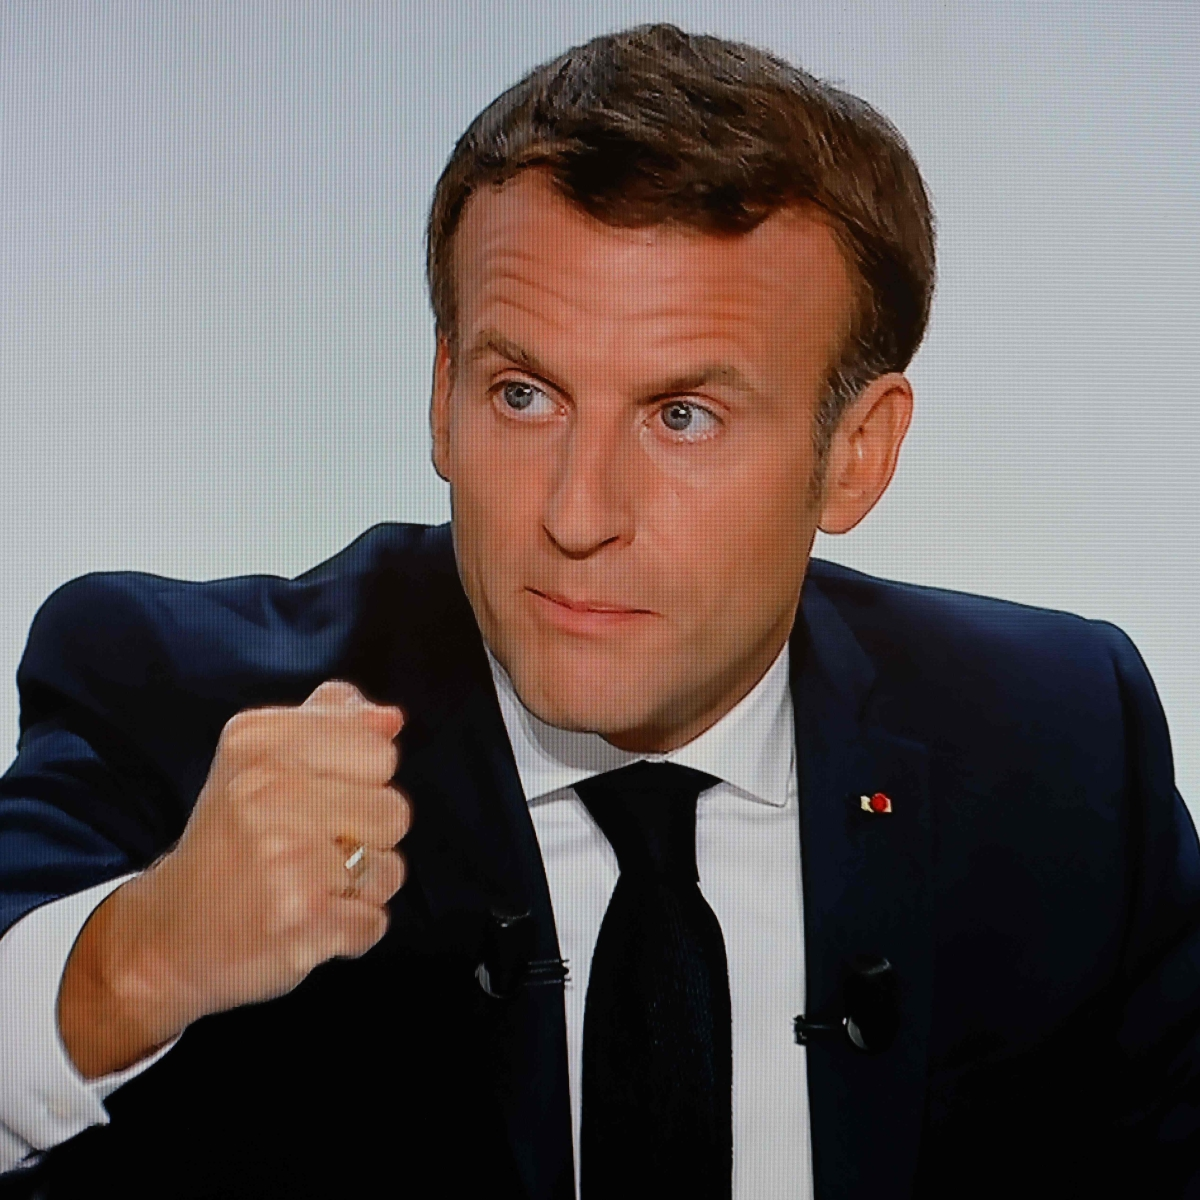 COVID-19 to stay at least until next summer, says Macron